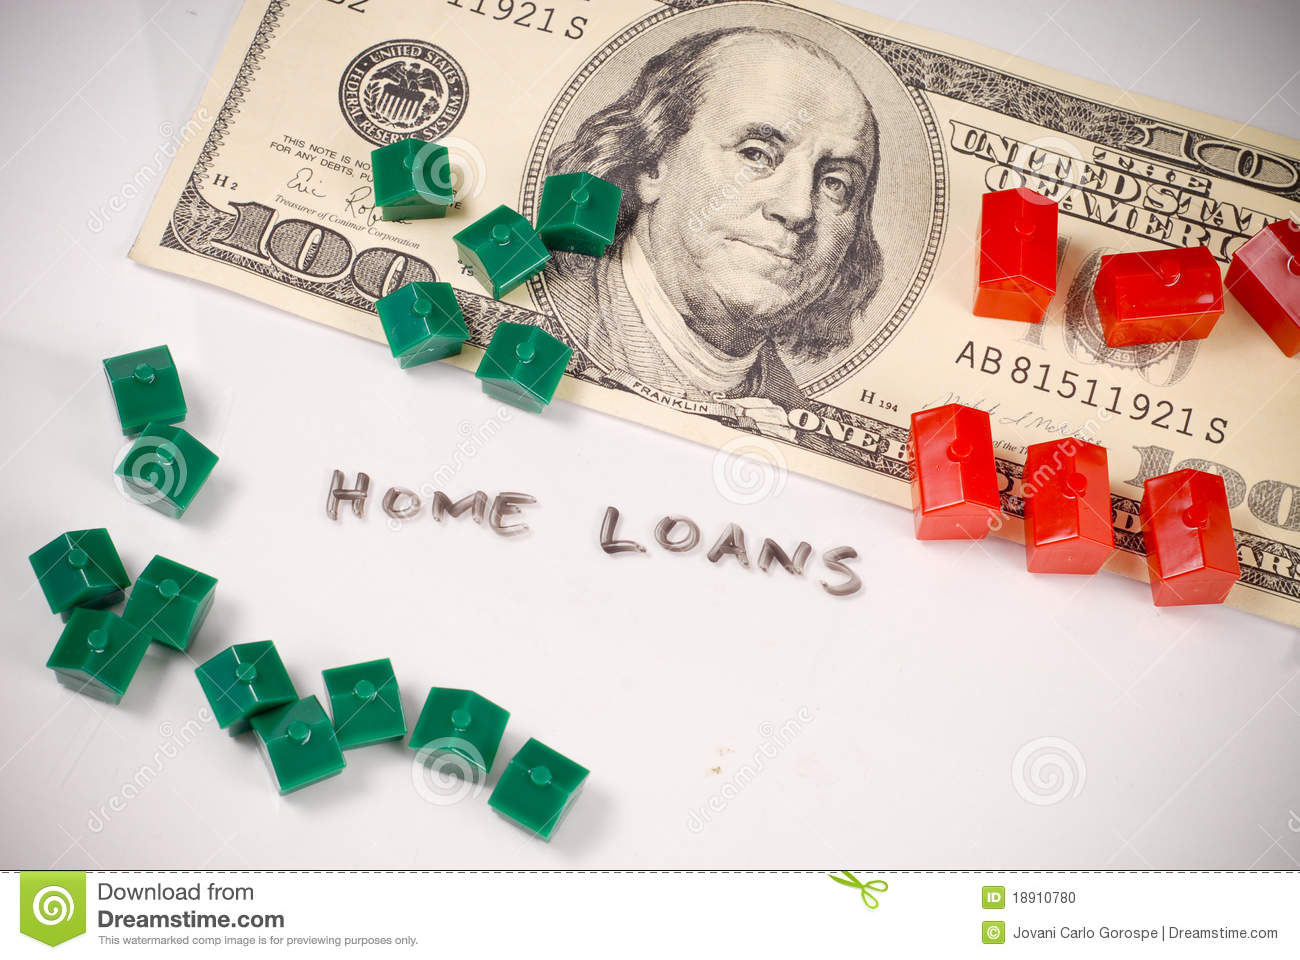 Refinance Mortgage During Chapter 13